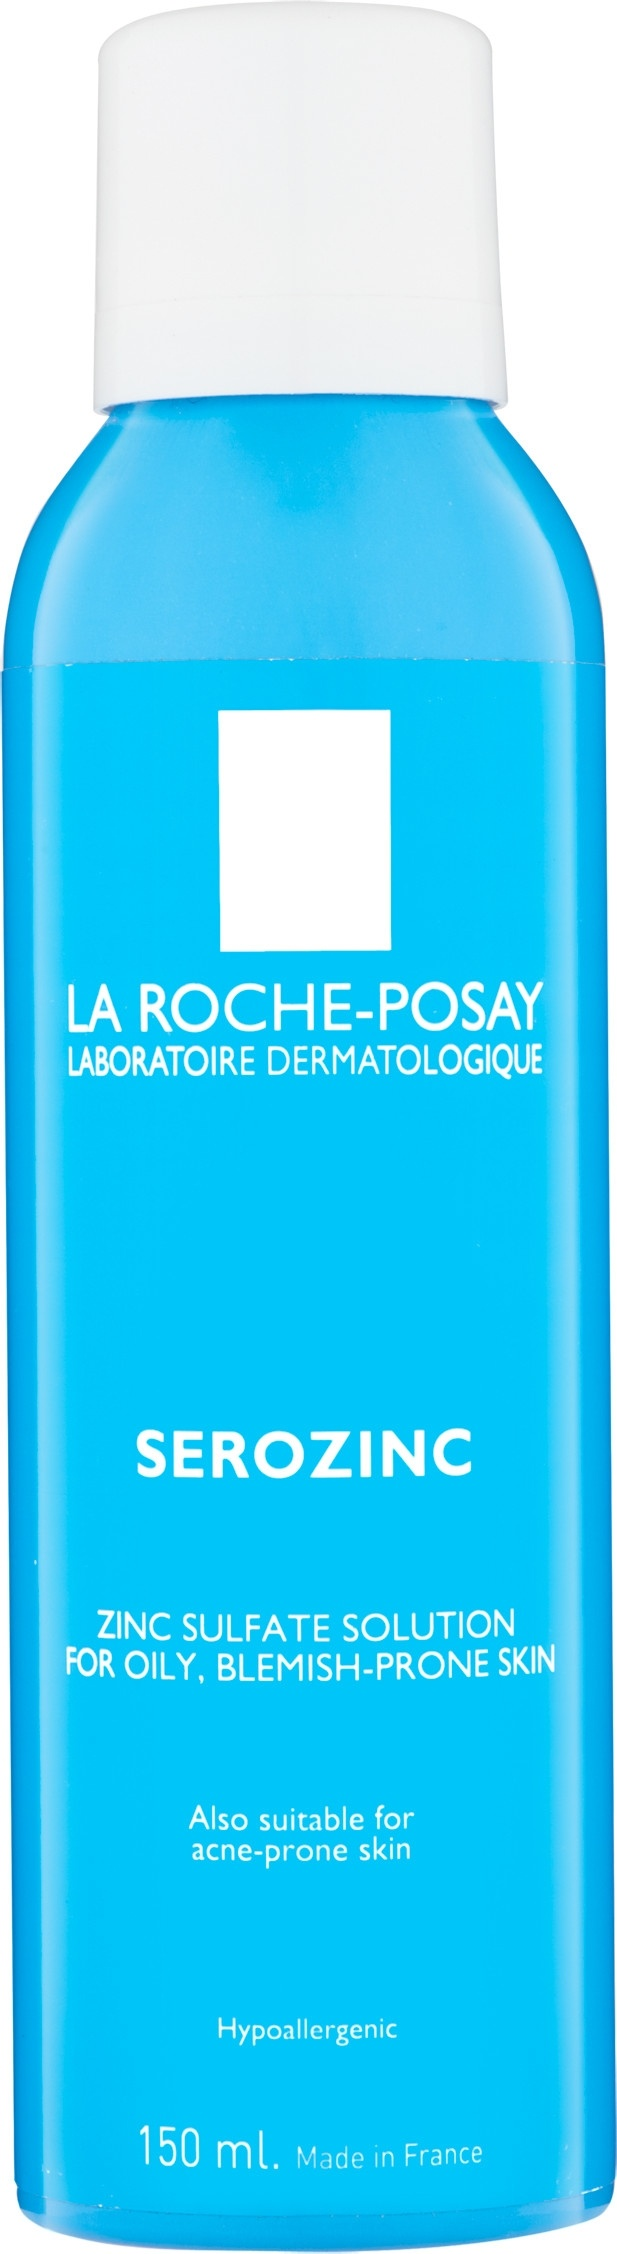 La Roche-Posay Serozinc Spray150ml